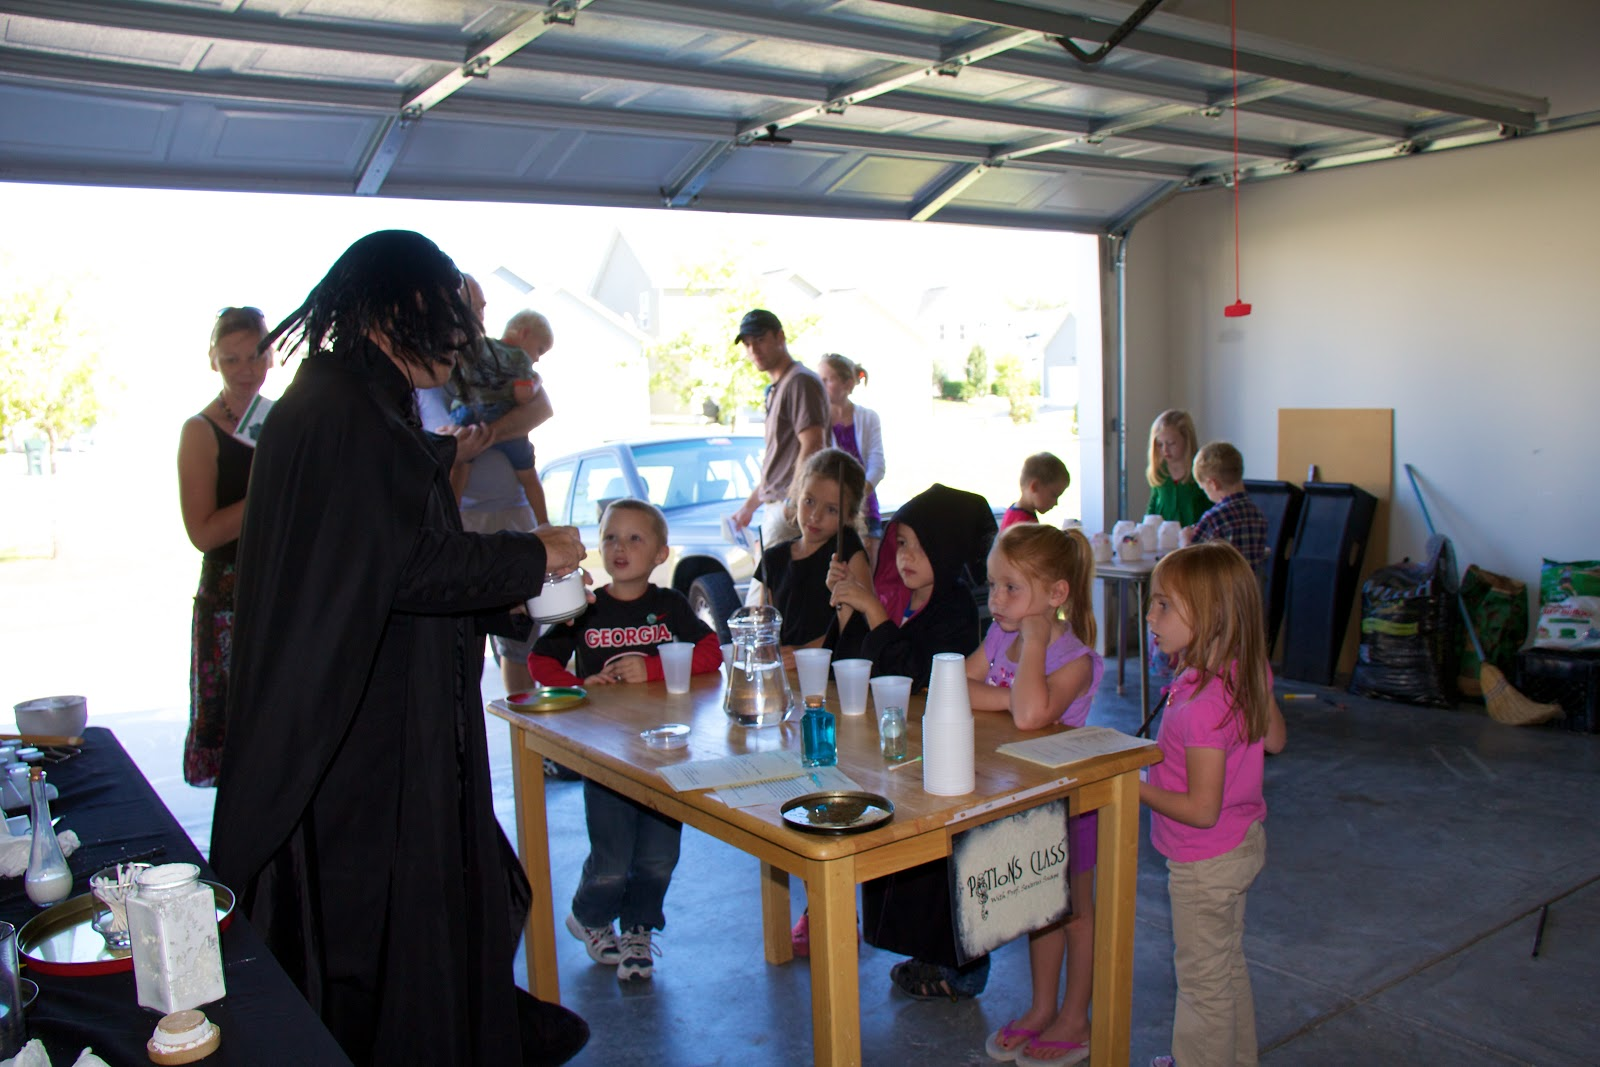 Mrs. Nespy's World: Our Harry Potter Party - Potions Class   1600 x 1067 jpeg 224kB